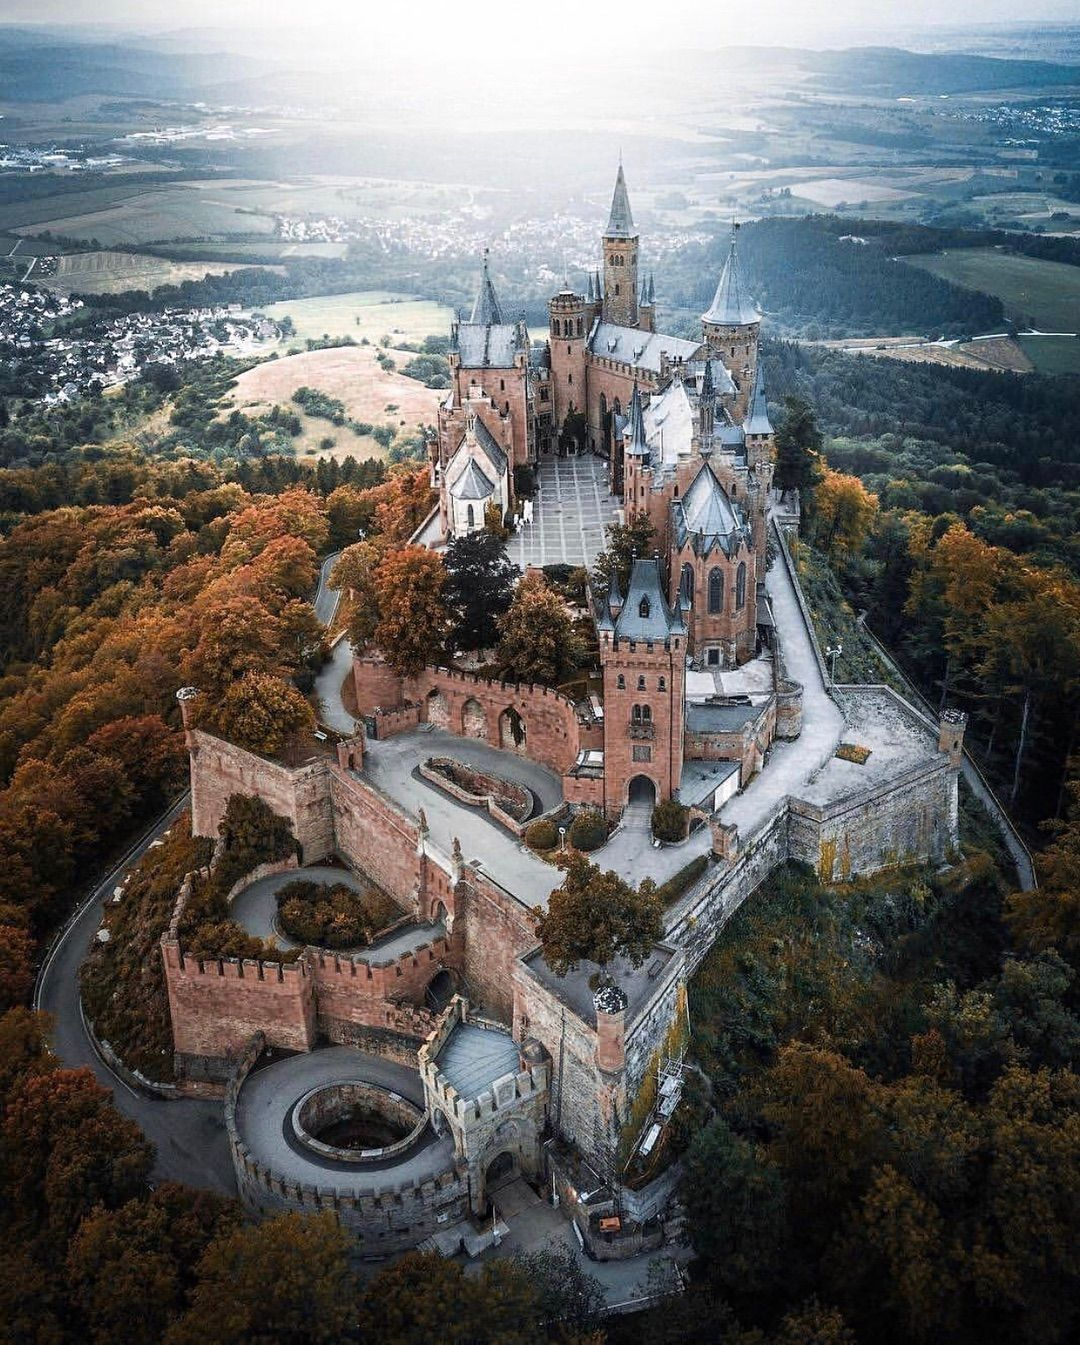 Burg Hohenzollern Hohenzollern Castle Germany Castles Castle